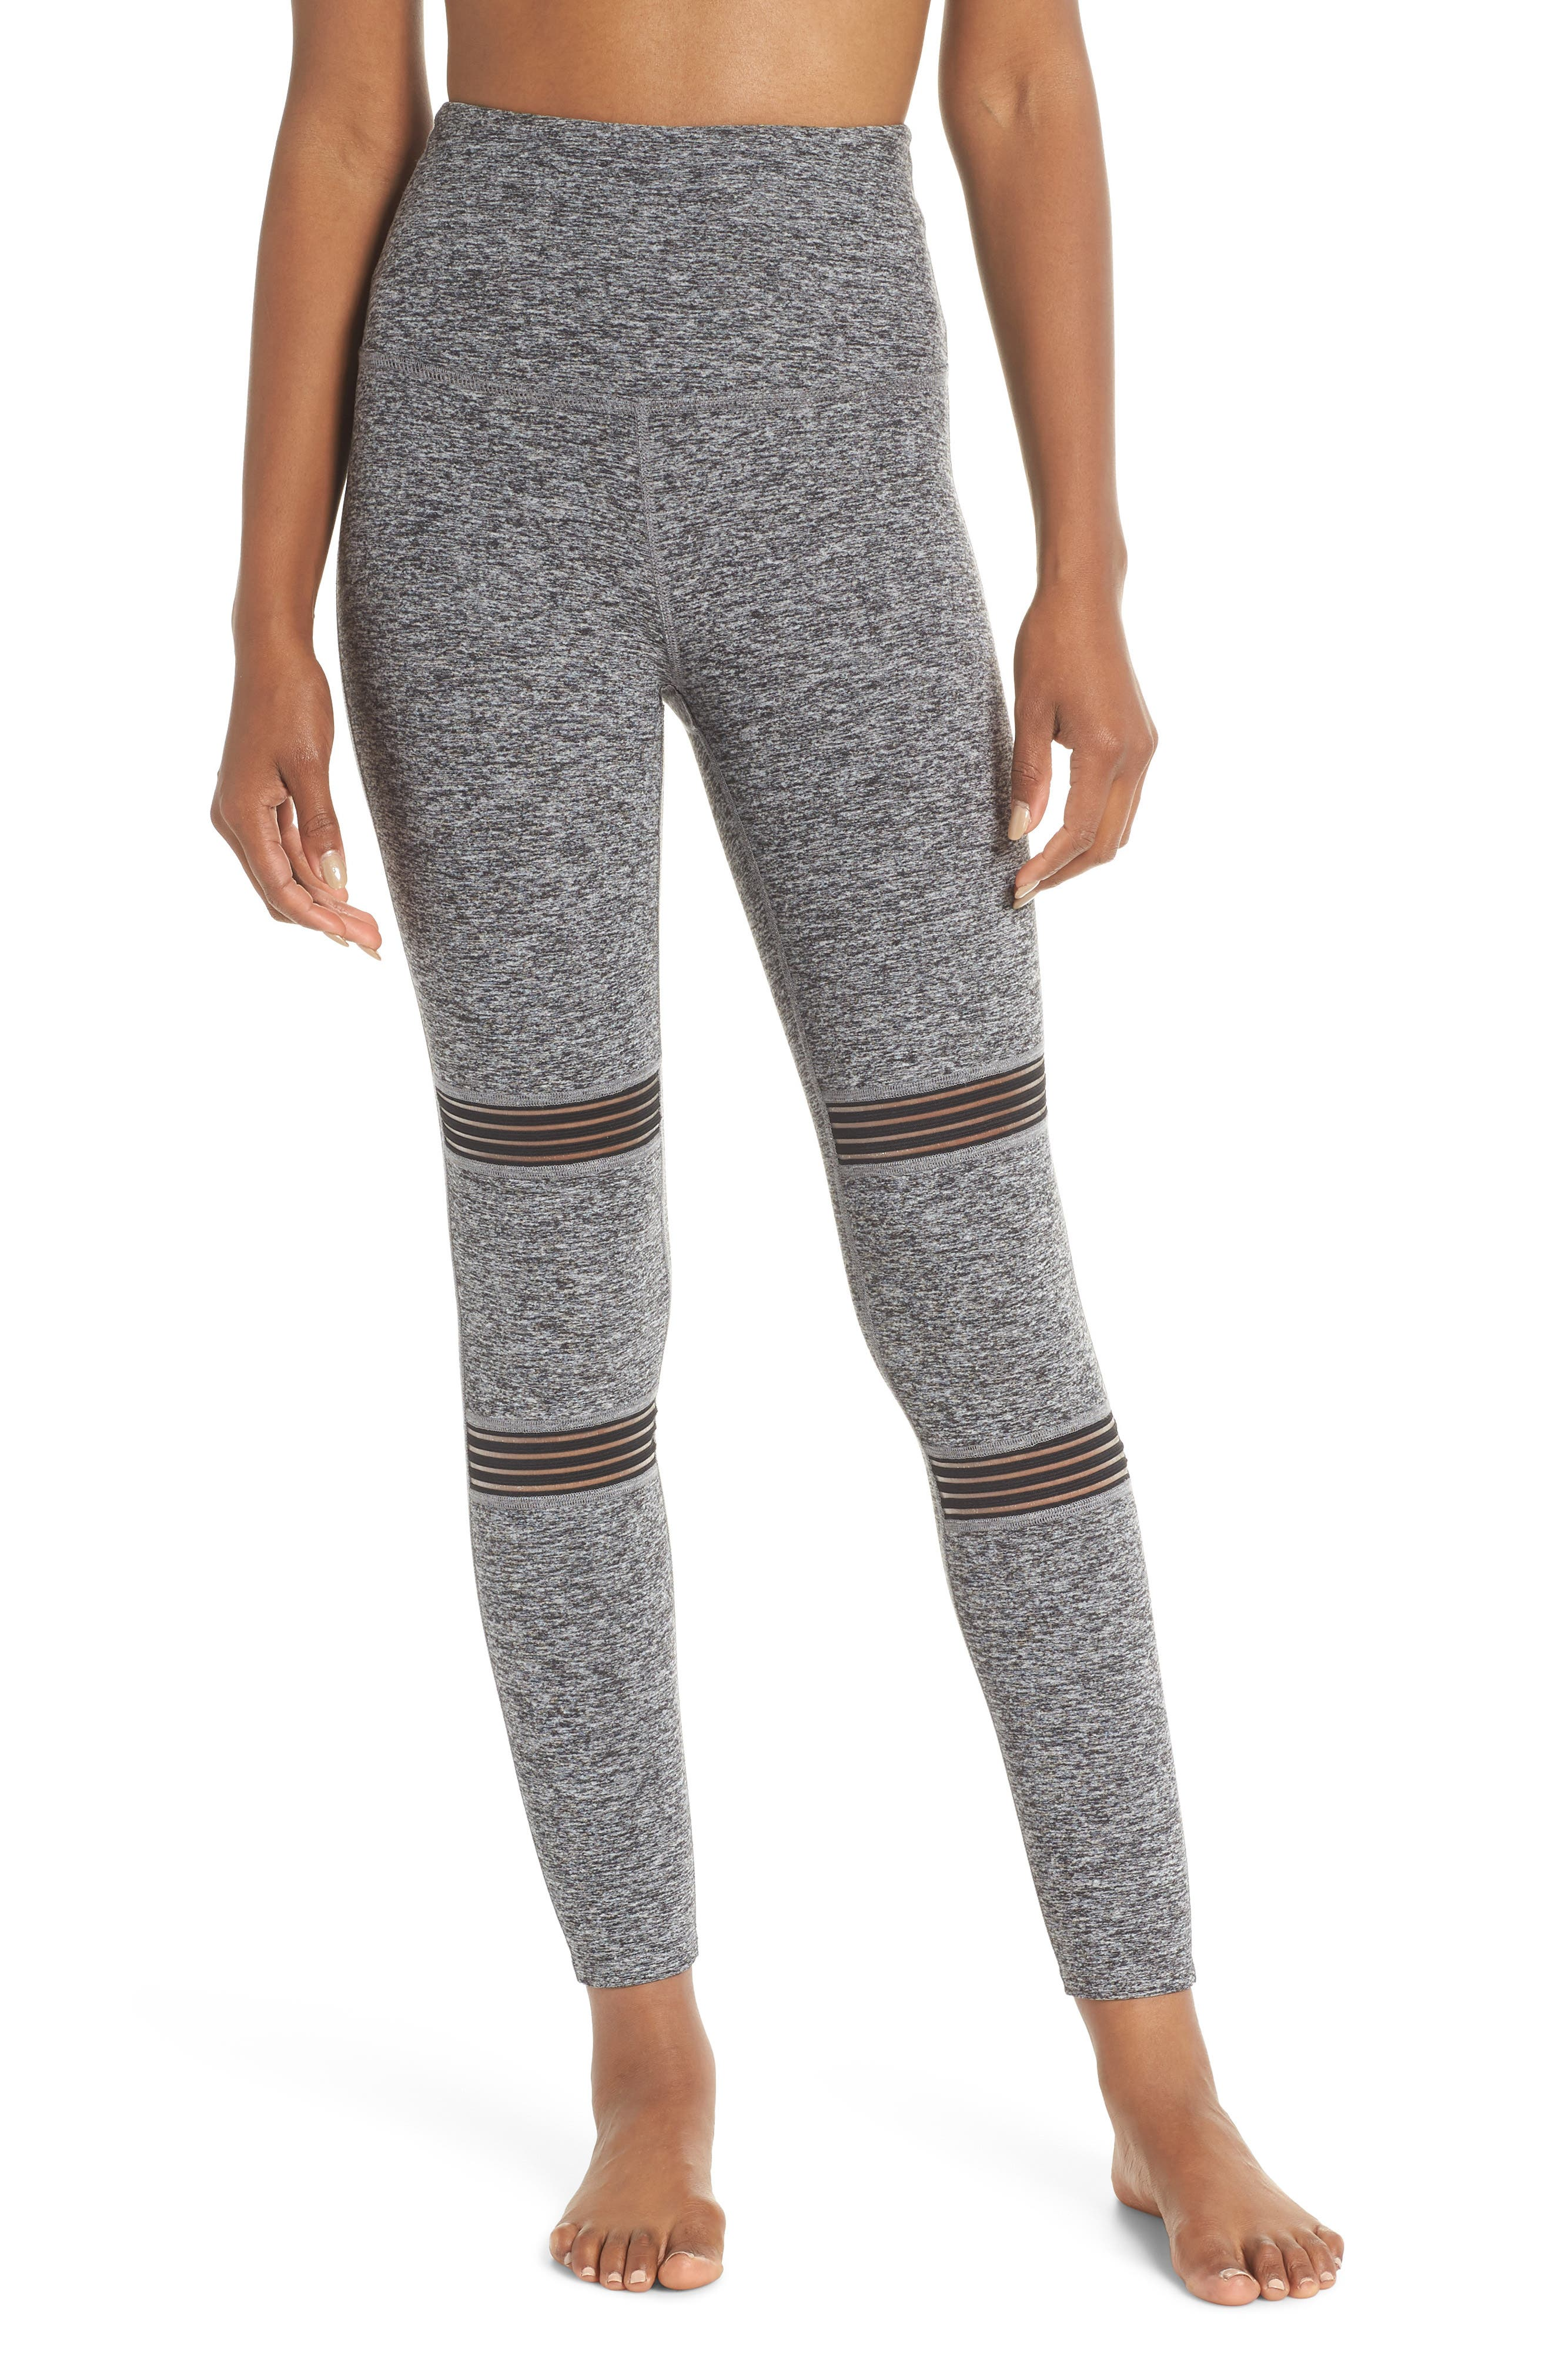 Mirage Midi High Waisted Space Dye Leggings,                         Main,                         color, 019